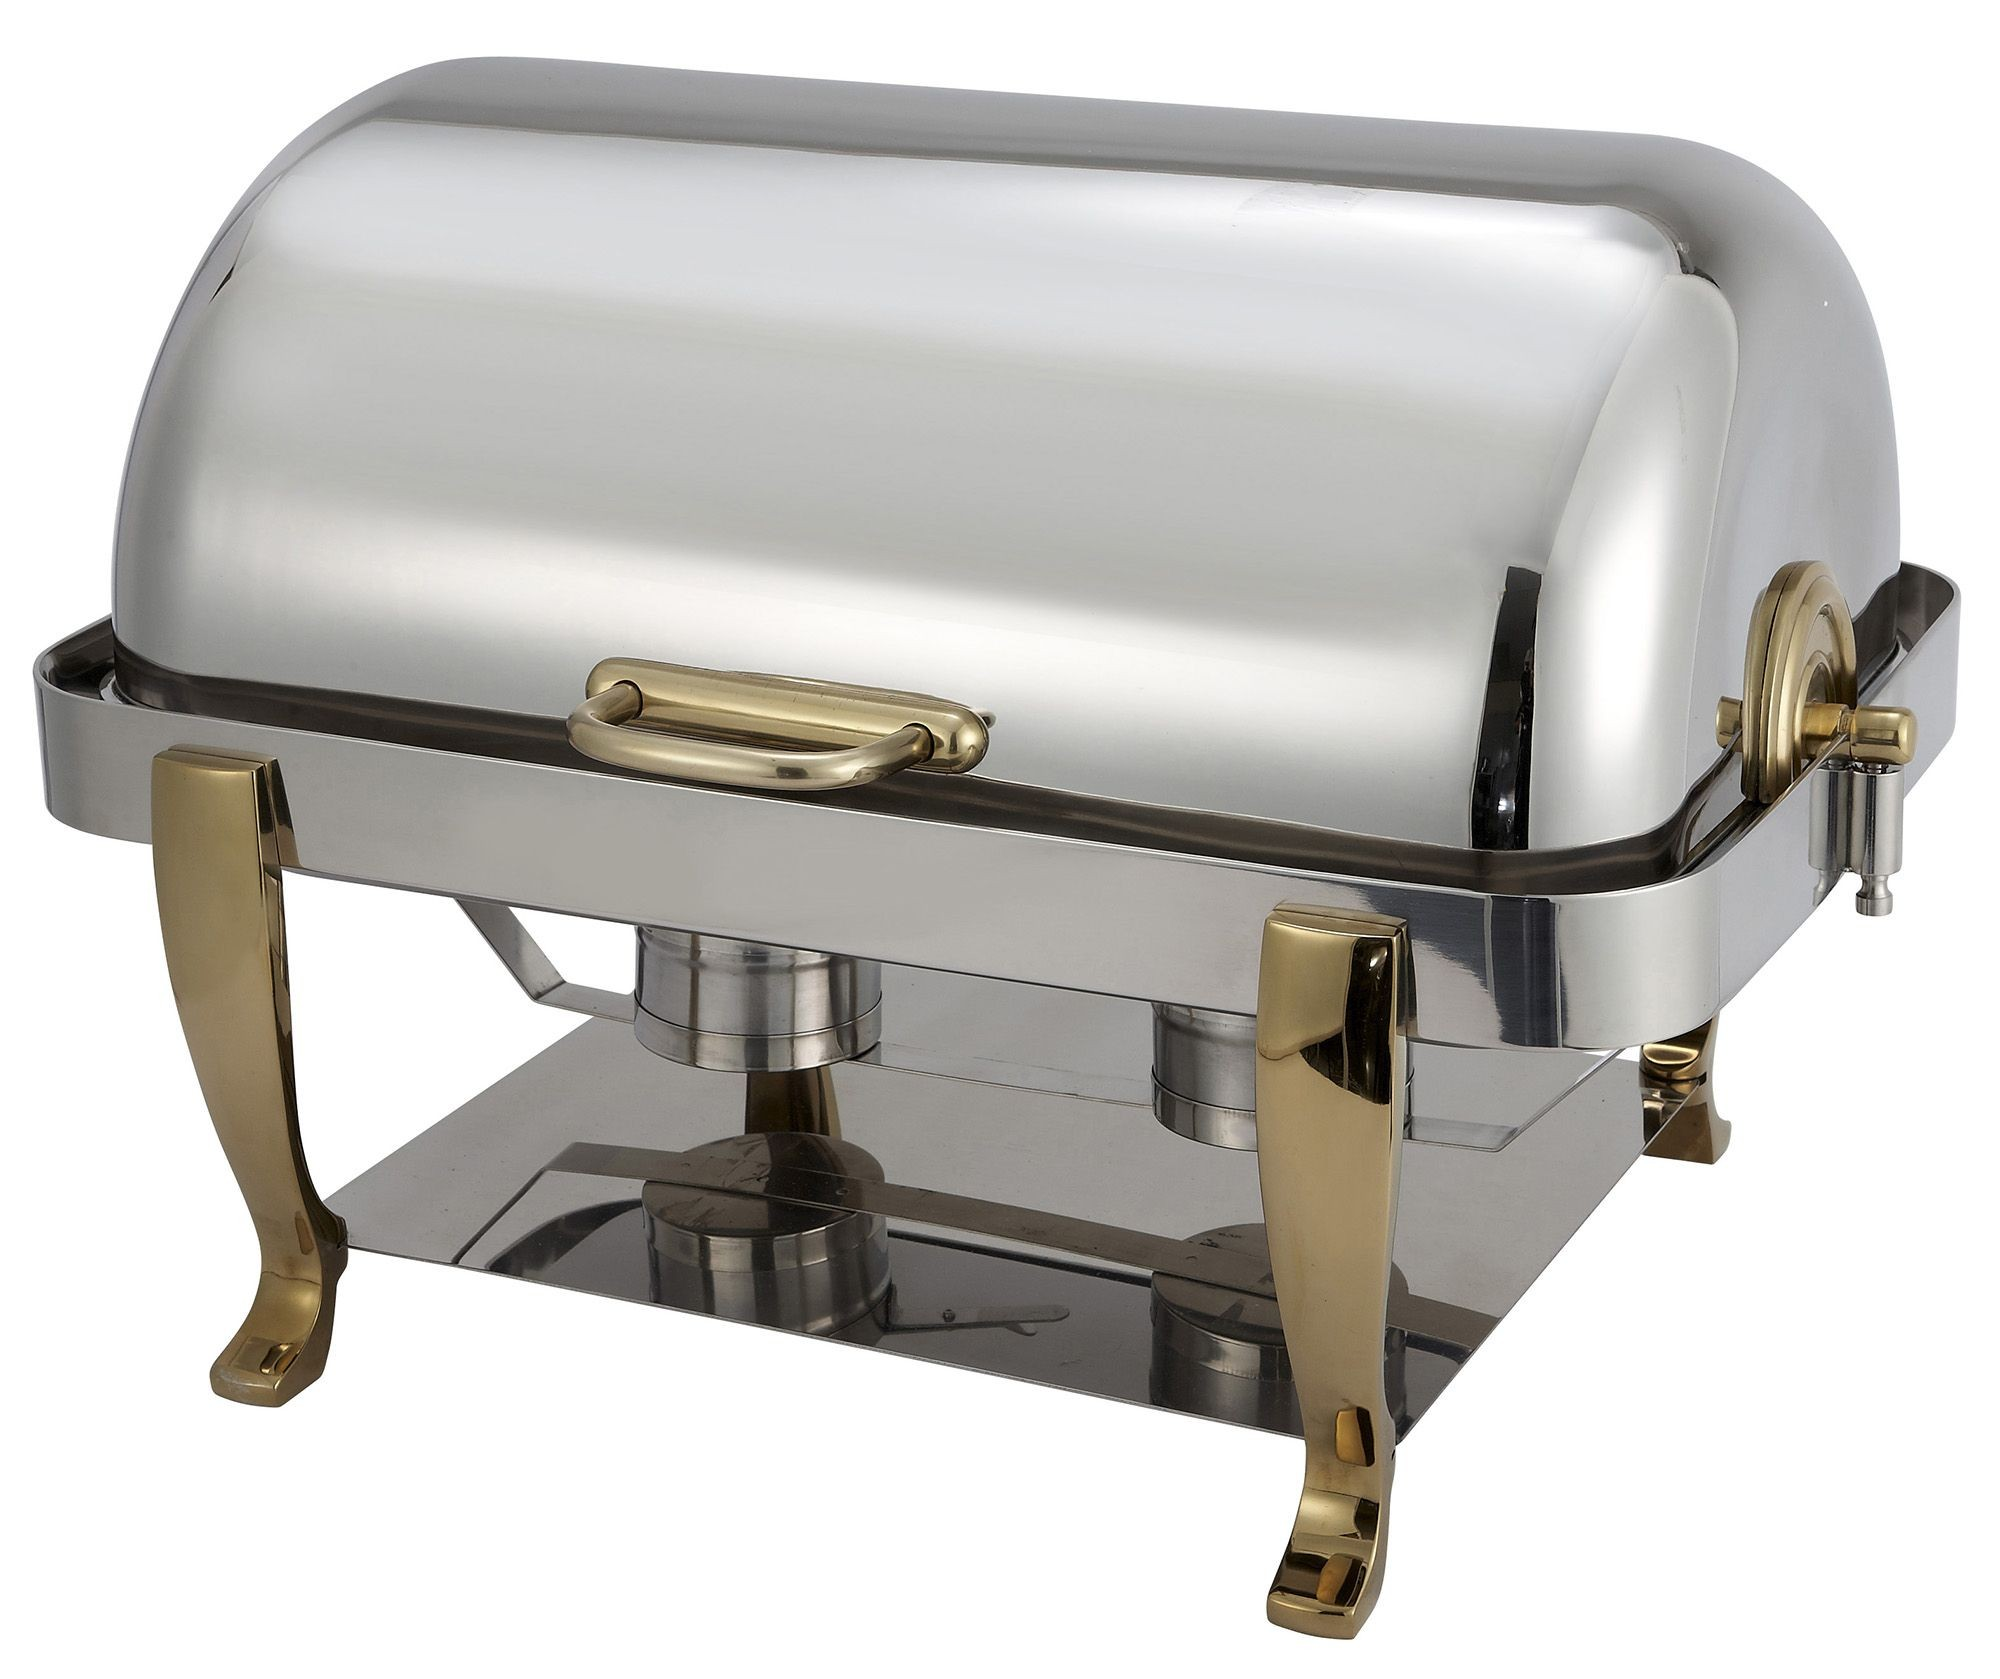 Winco 108A Vintage Full Size Roll Top Stainless Steel Stainless Chafer